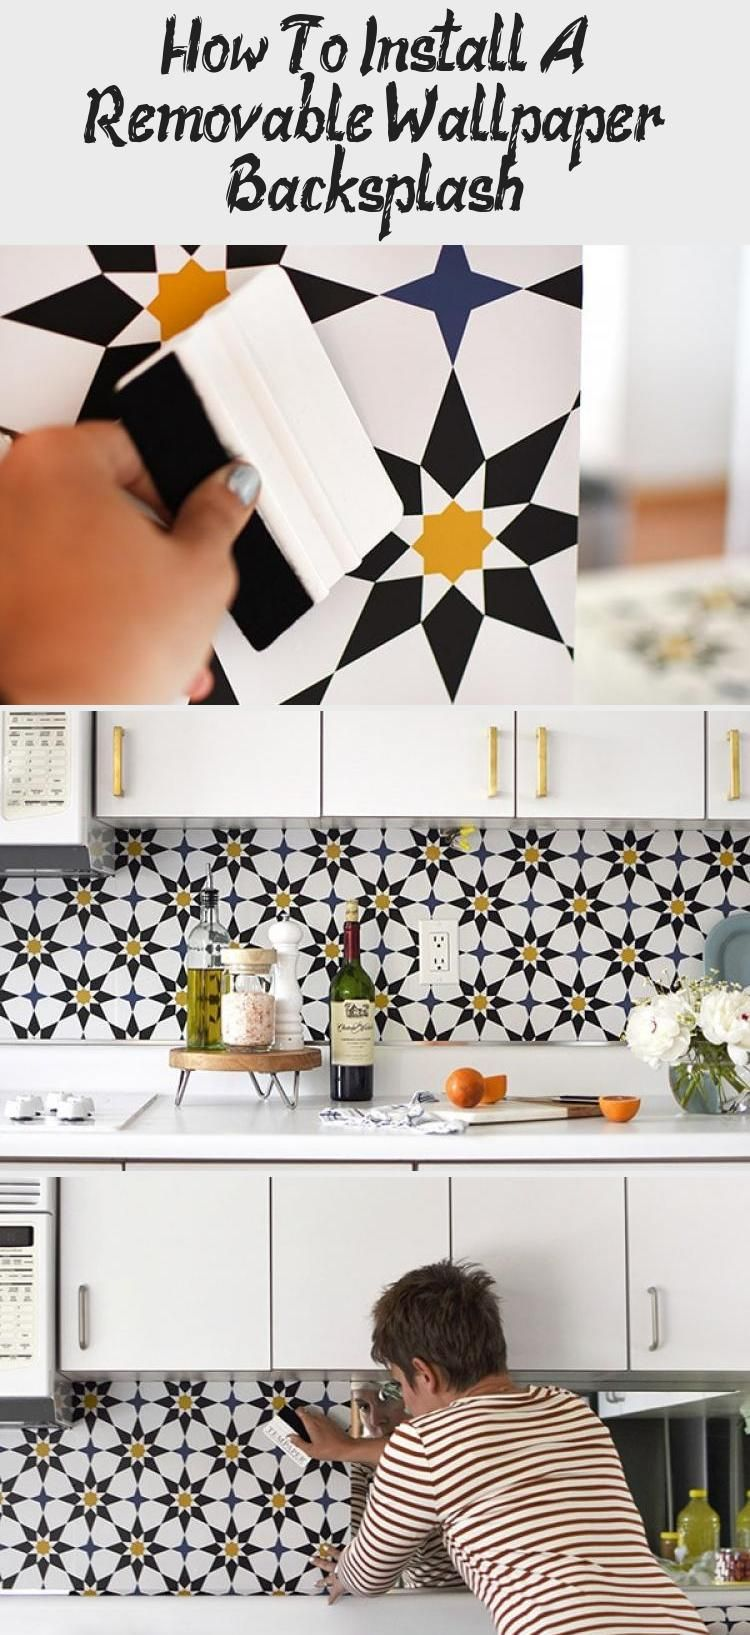 Learn How To Completely Transform Your Kitchen By Installing A Removable Wallpaper Backsplash It Is Removable Wallpaper Backsplash Kitchen Backsplash Designs